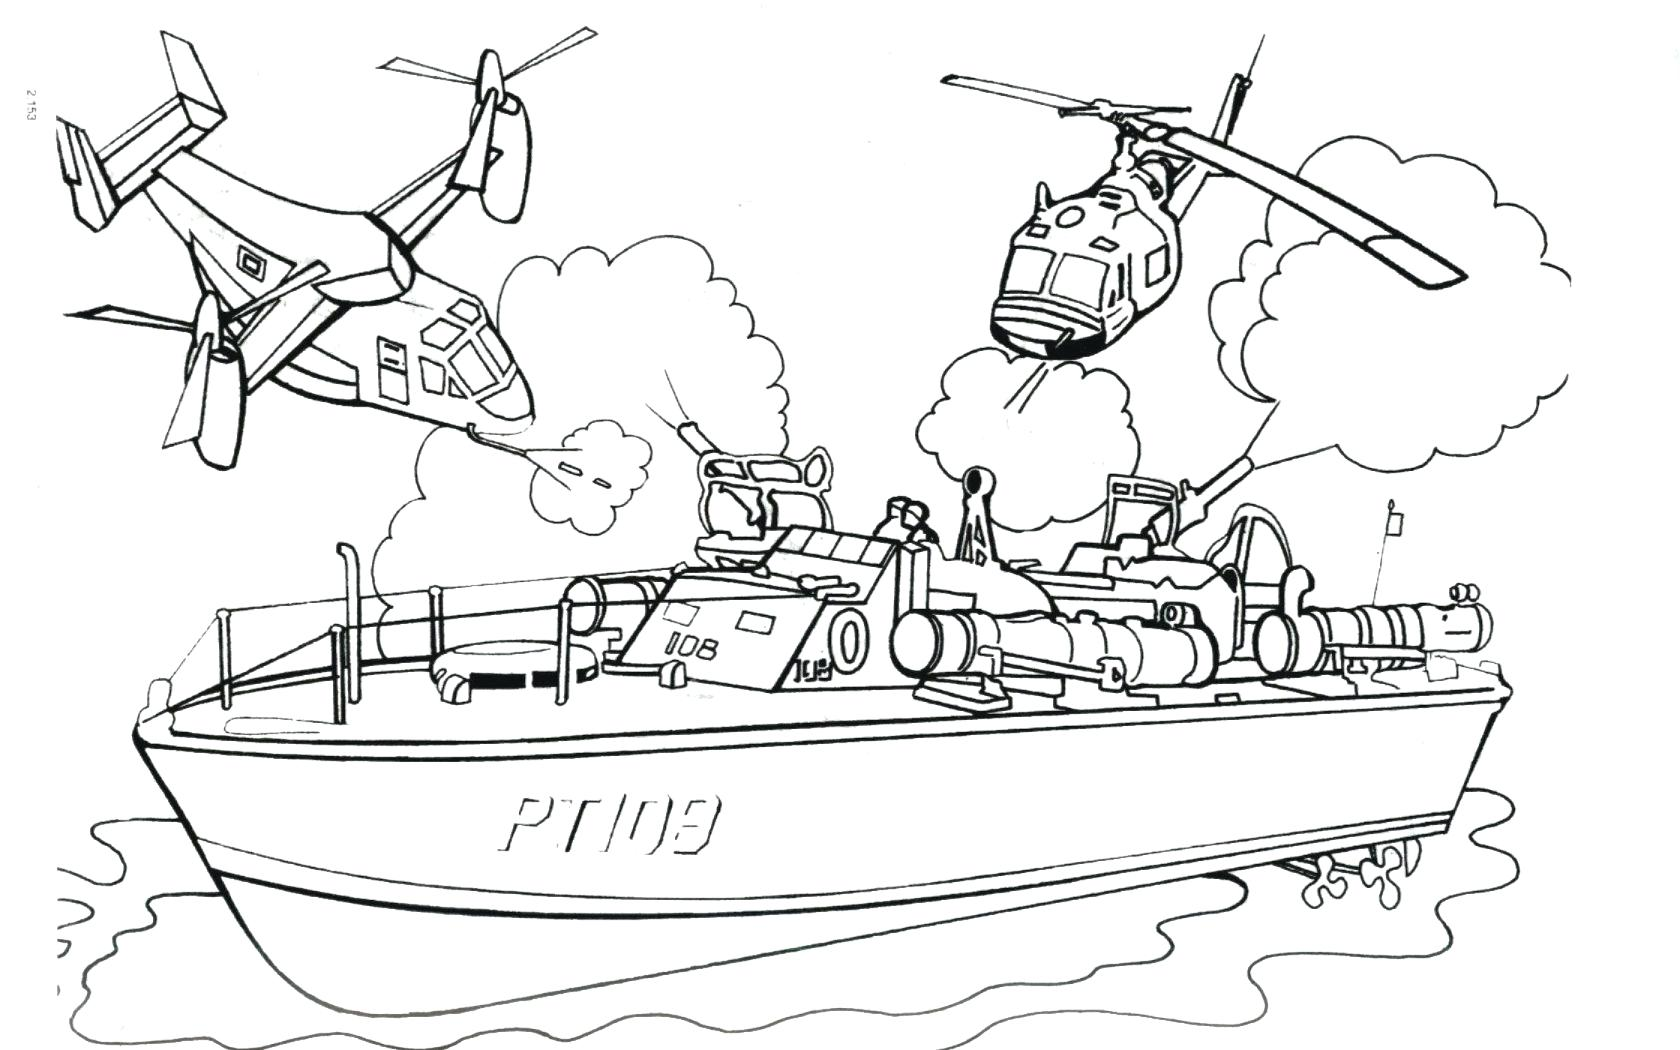 1680x1050 Coloring Boat Coloring Sheet